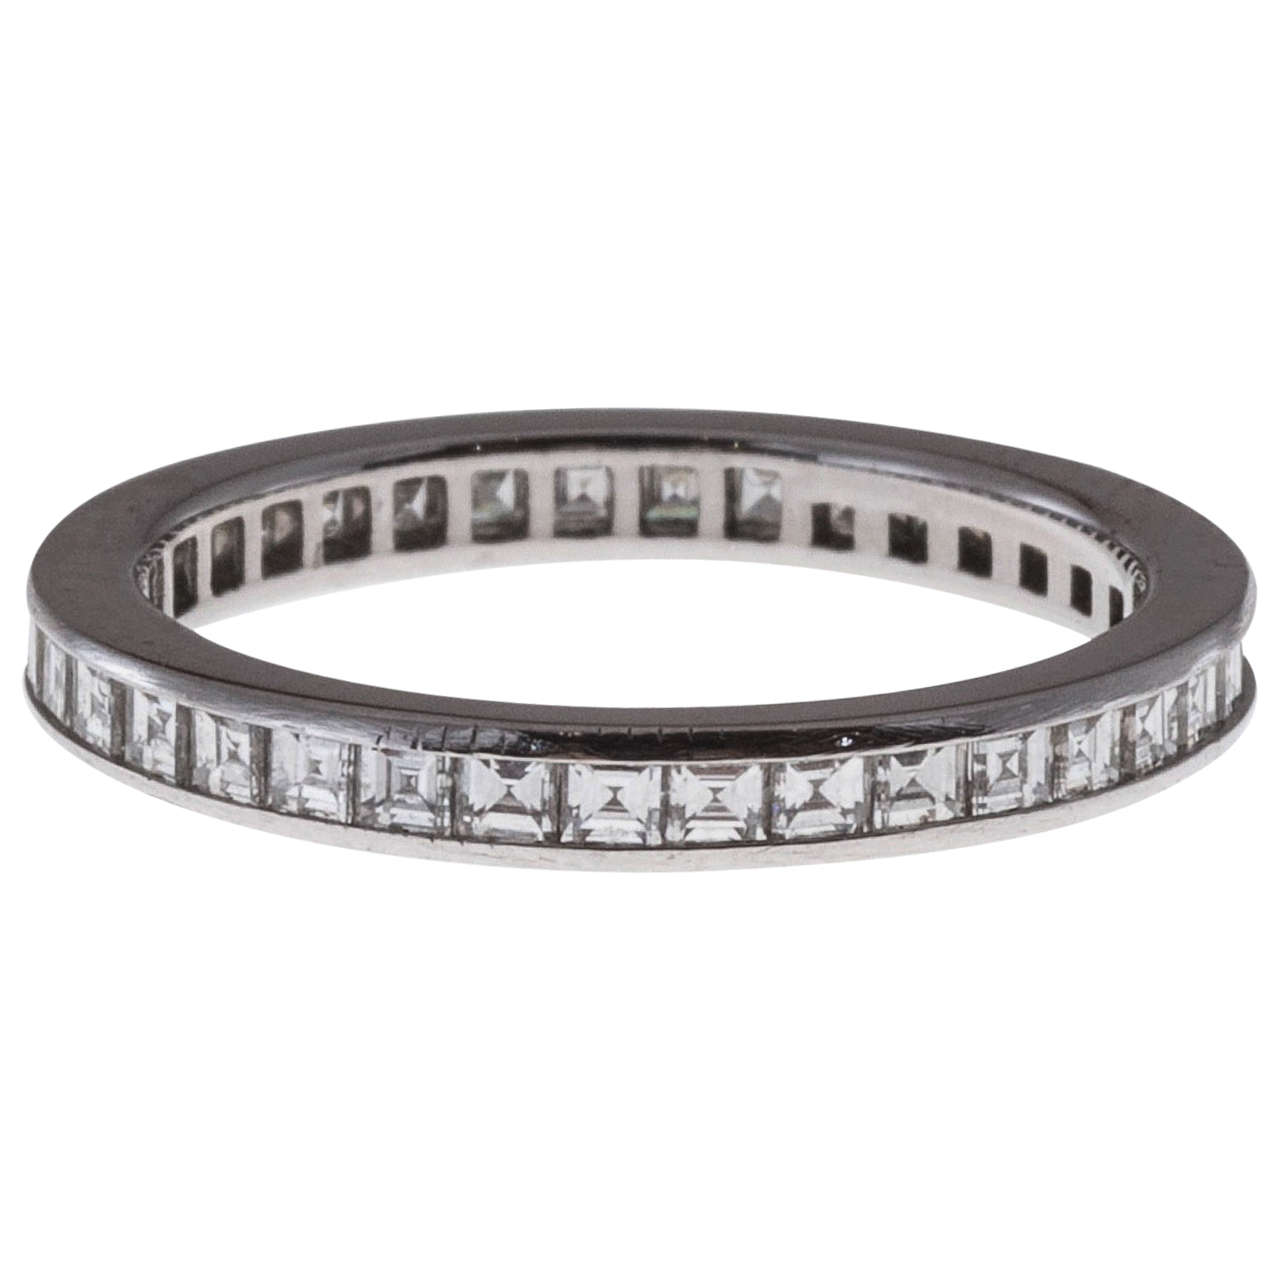 c724de773fdf Tiffany and Co. Diamond Platinum Eternity Ring For Sale at 1stdibs